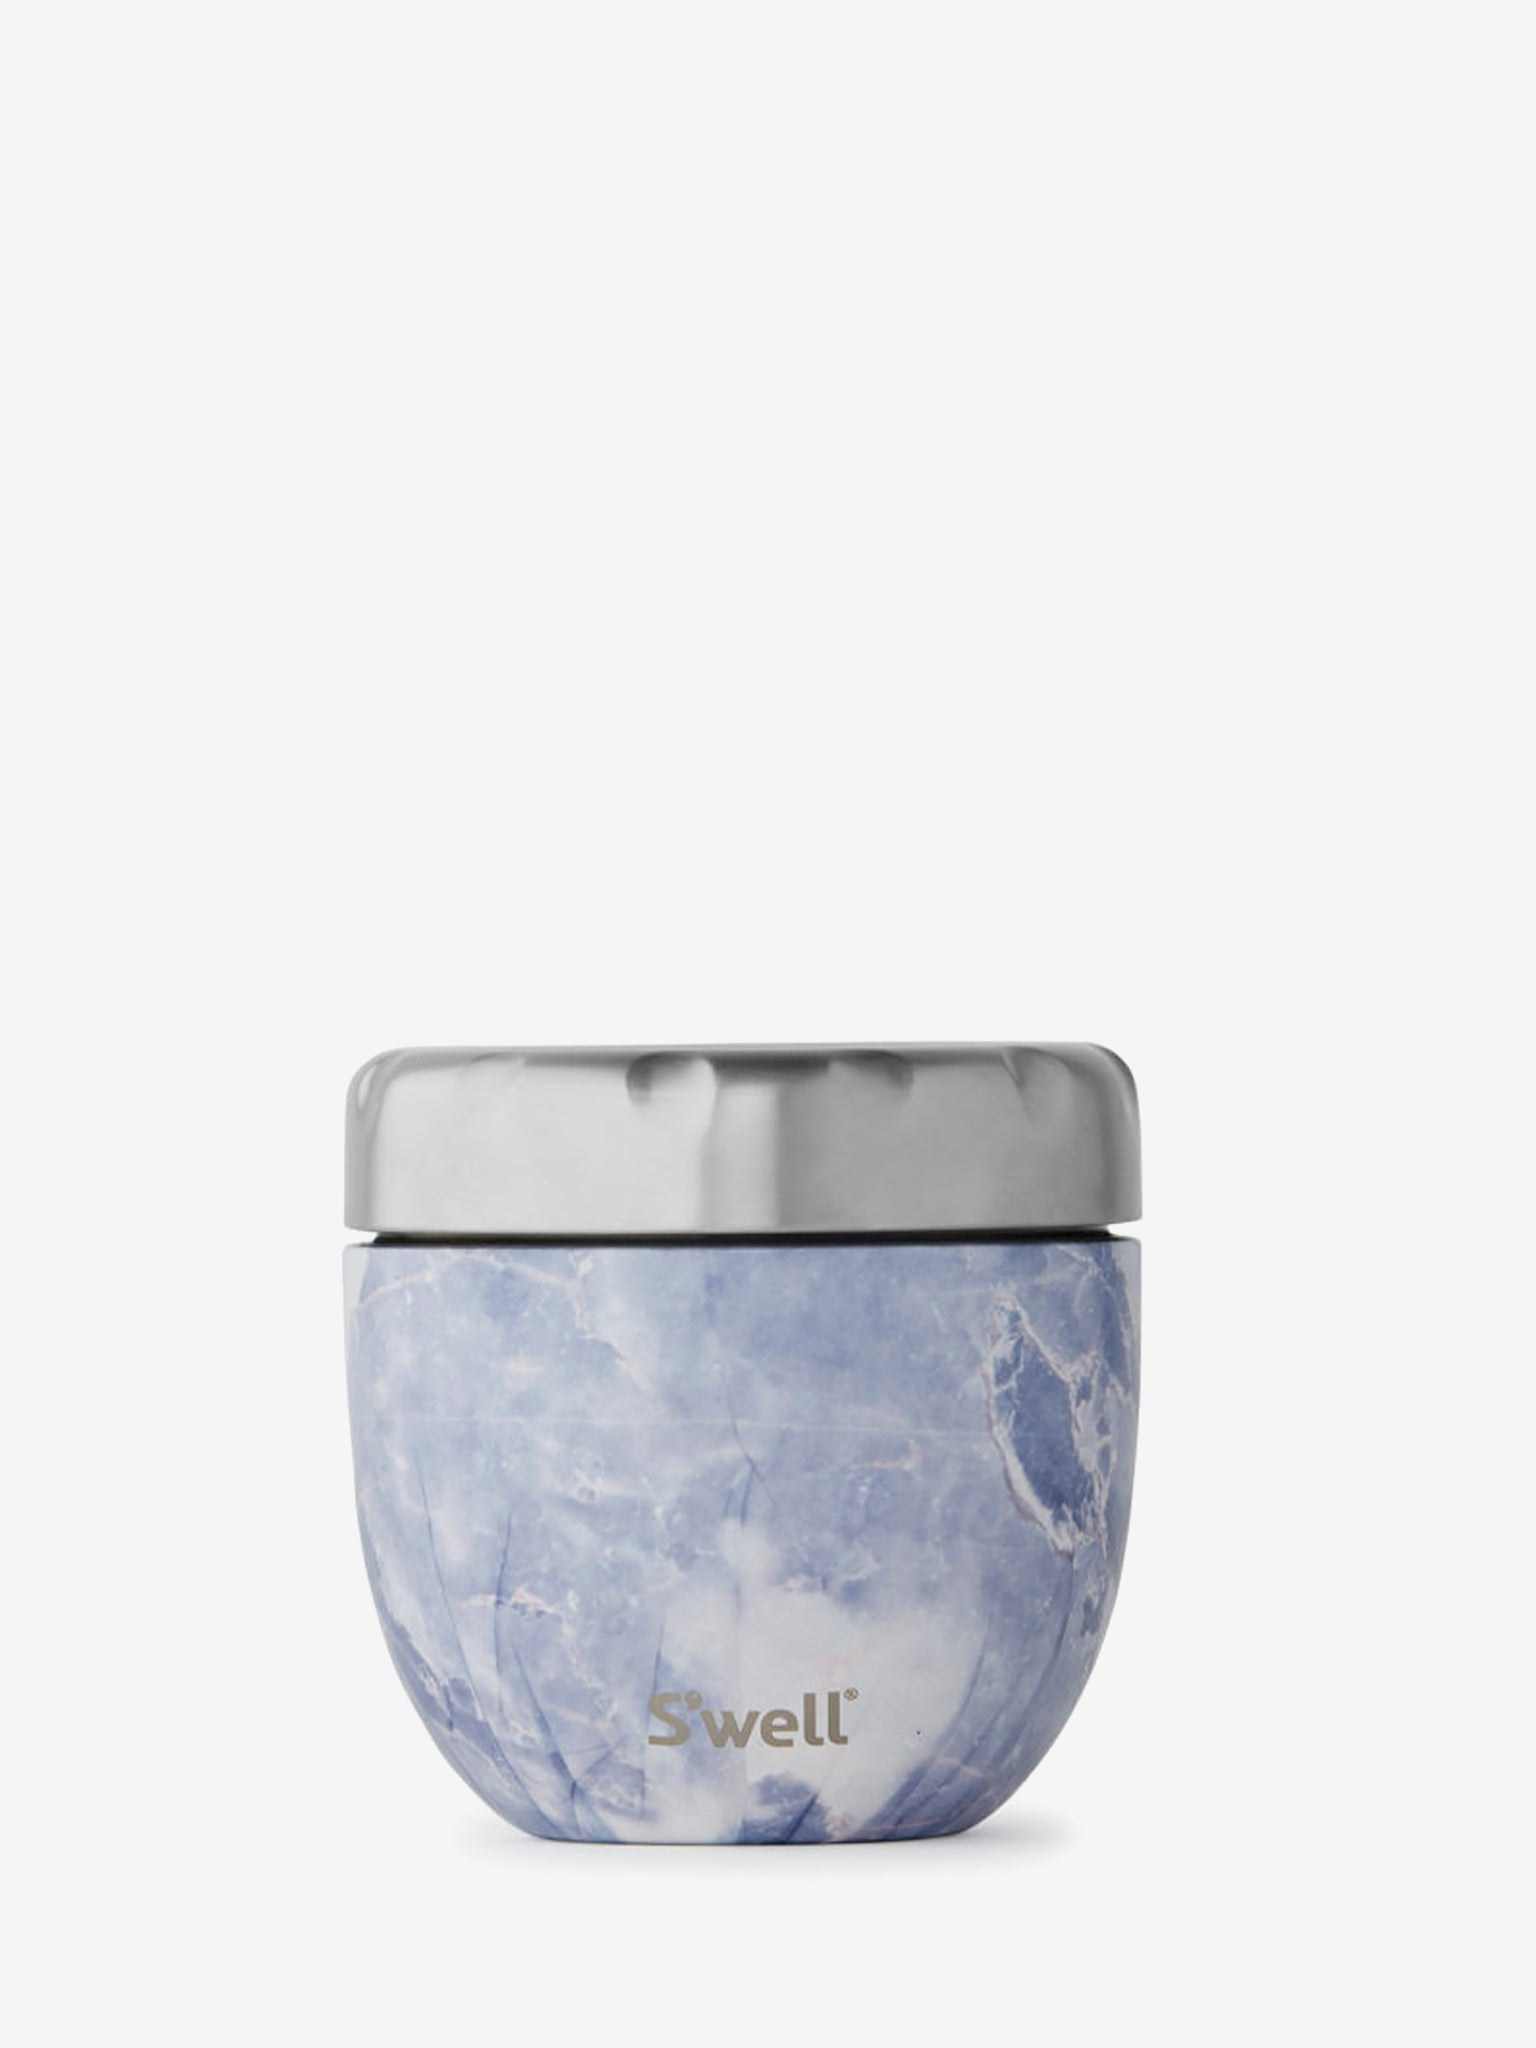 S'well Eats Bowl 620ml - Blue Granite